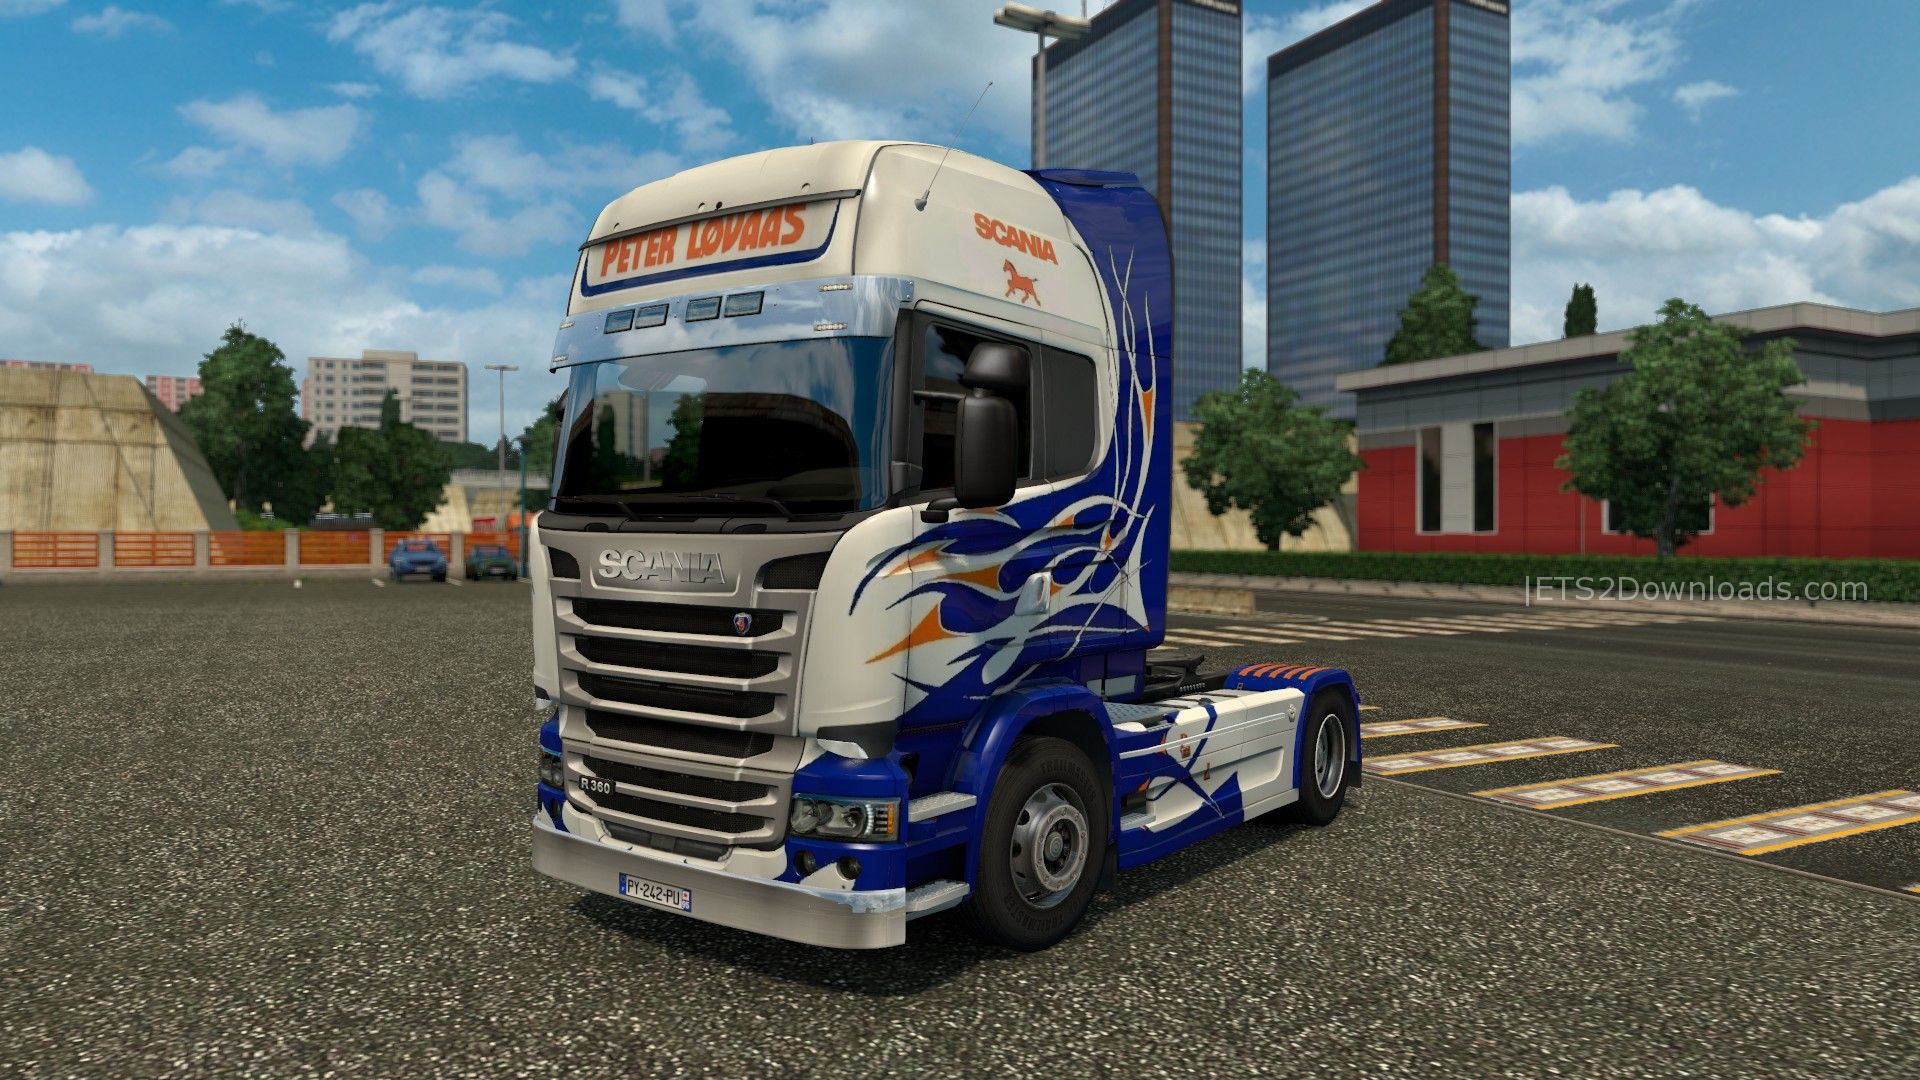 peter-lovaas-skin-for-scania-streamline